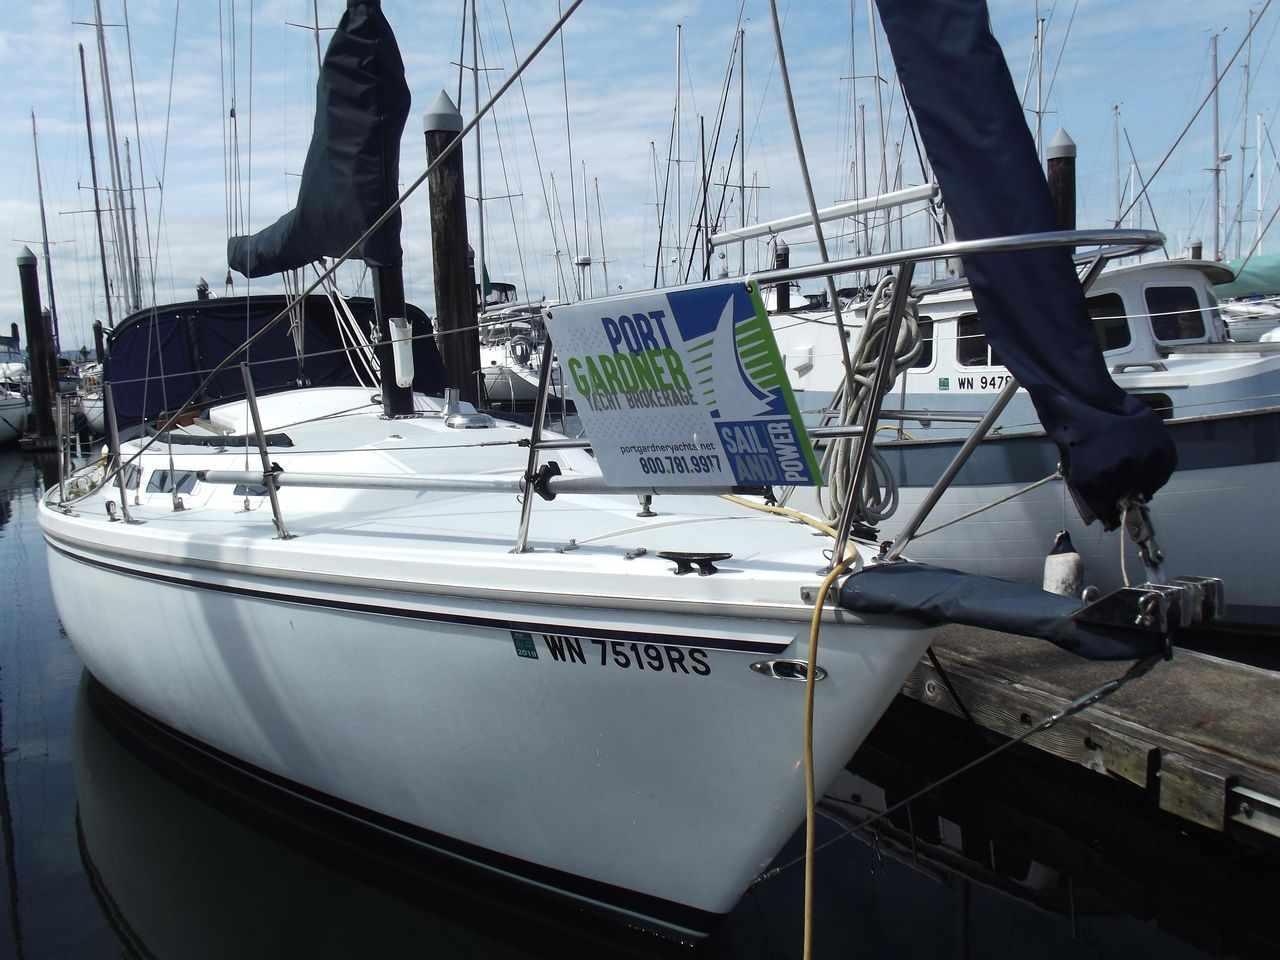 1977 Used Catalina 30 Sloop Sailboat For Sale - $24,900